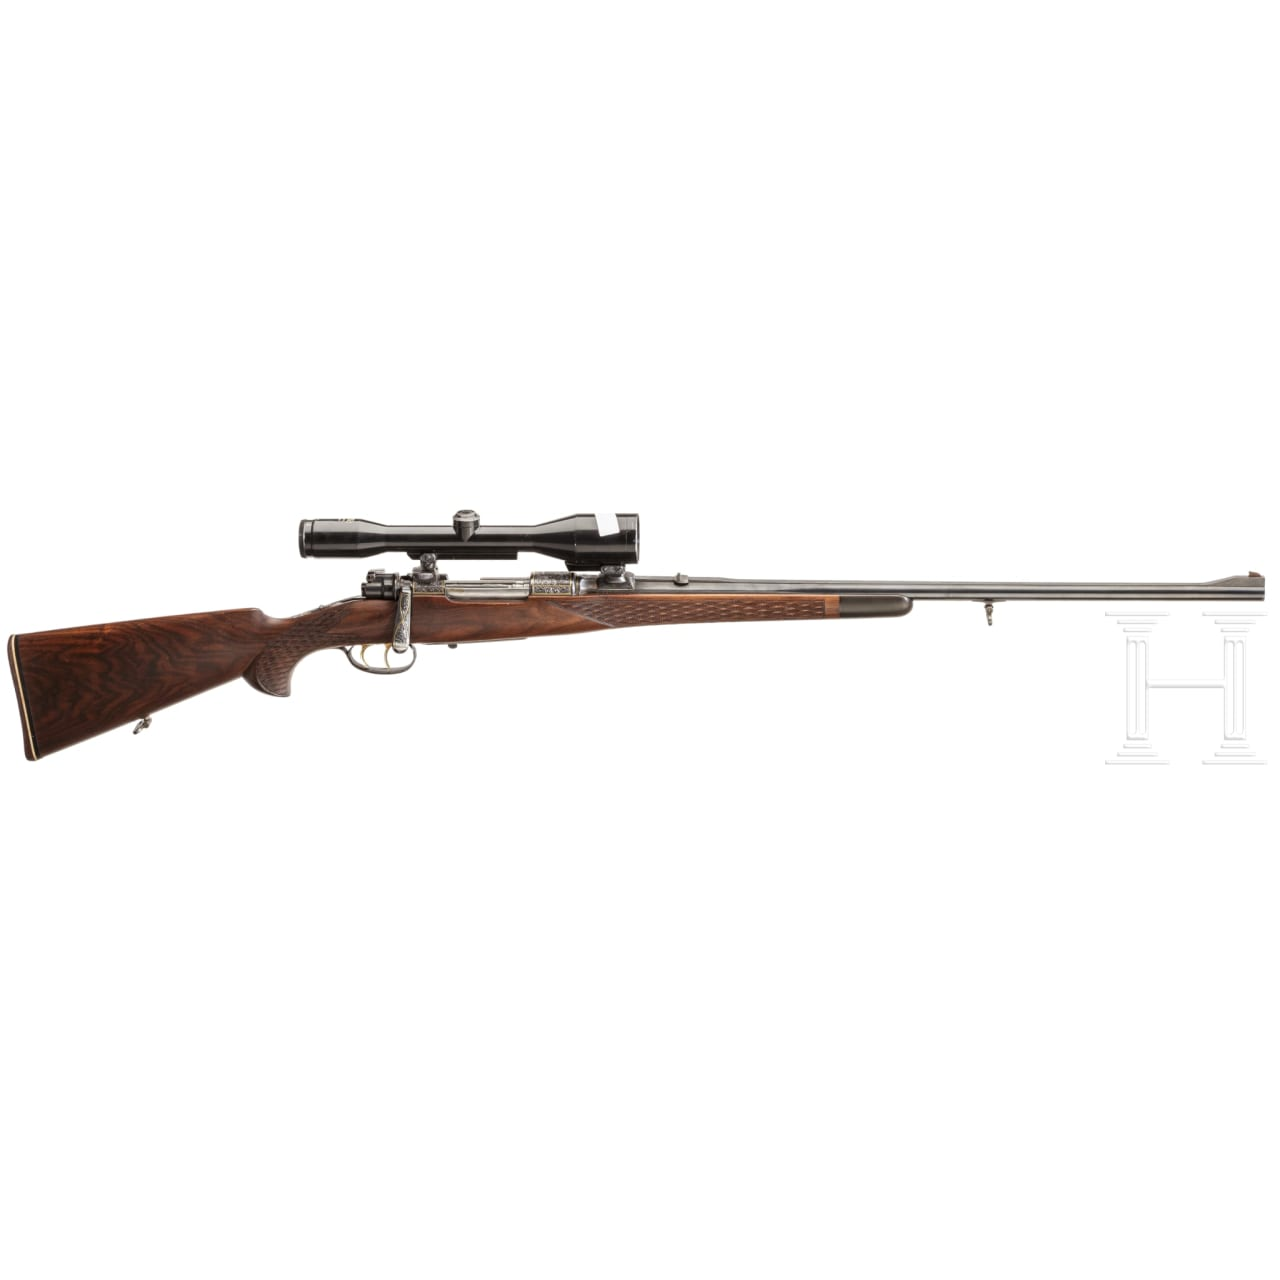 A Borovnik repeating rifle, Ferlach, with Zeiss scope